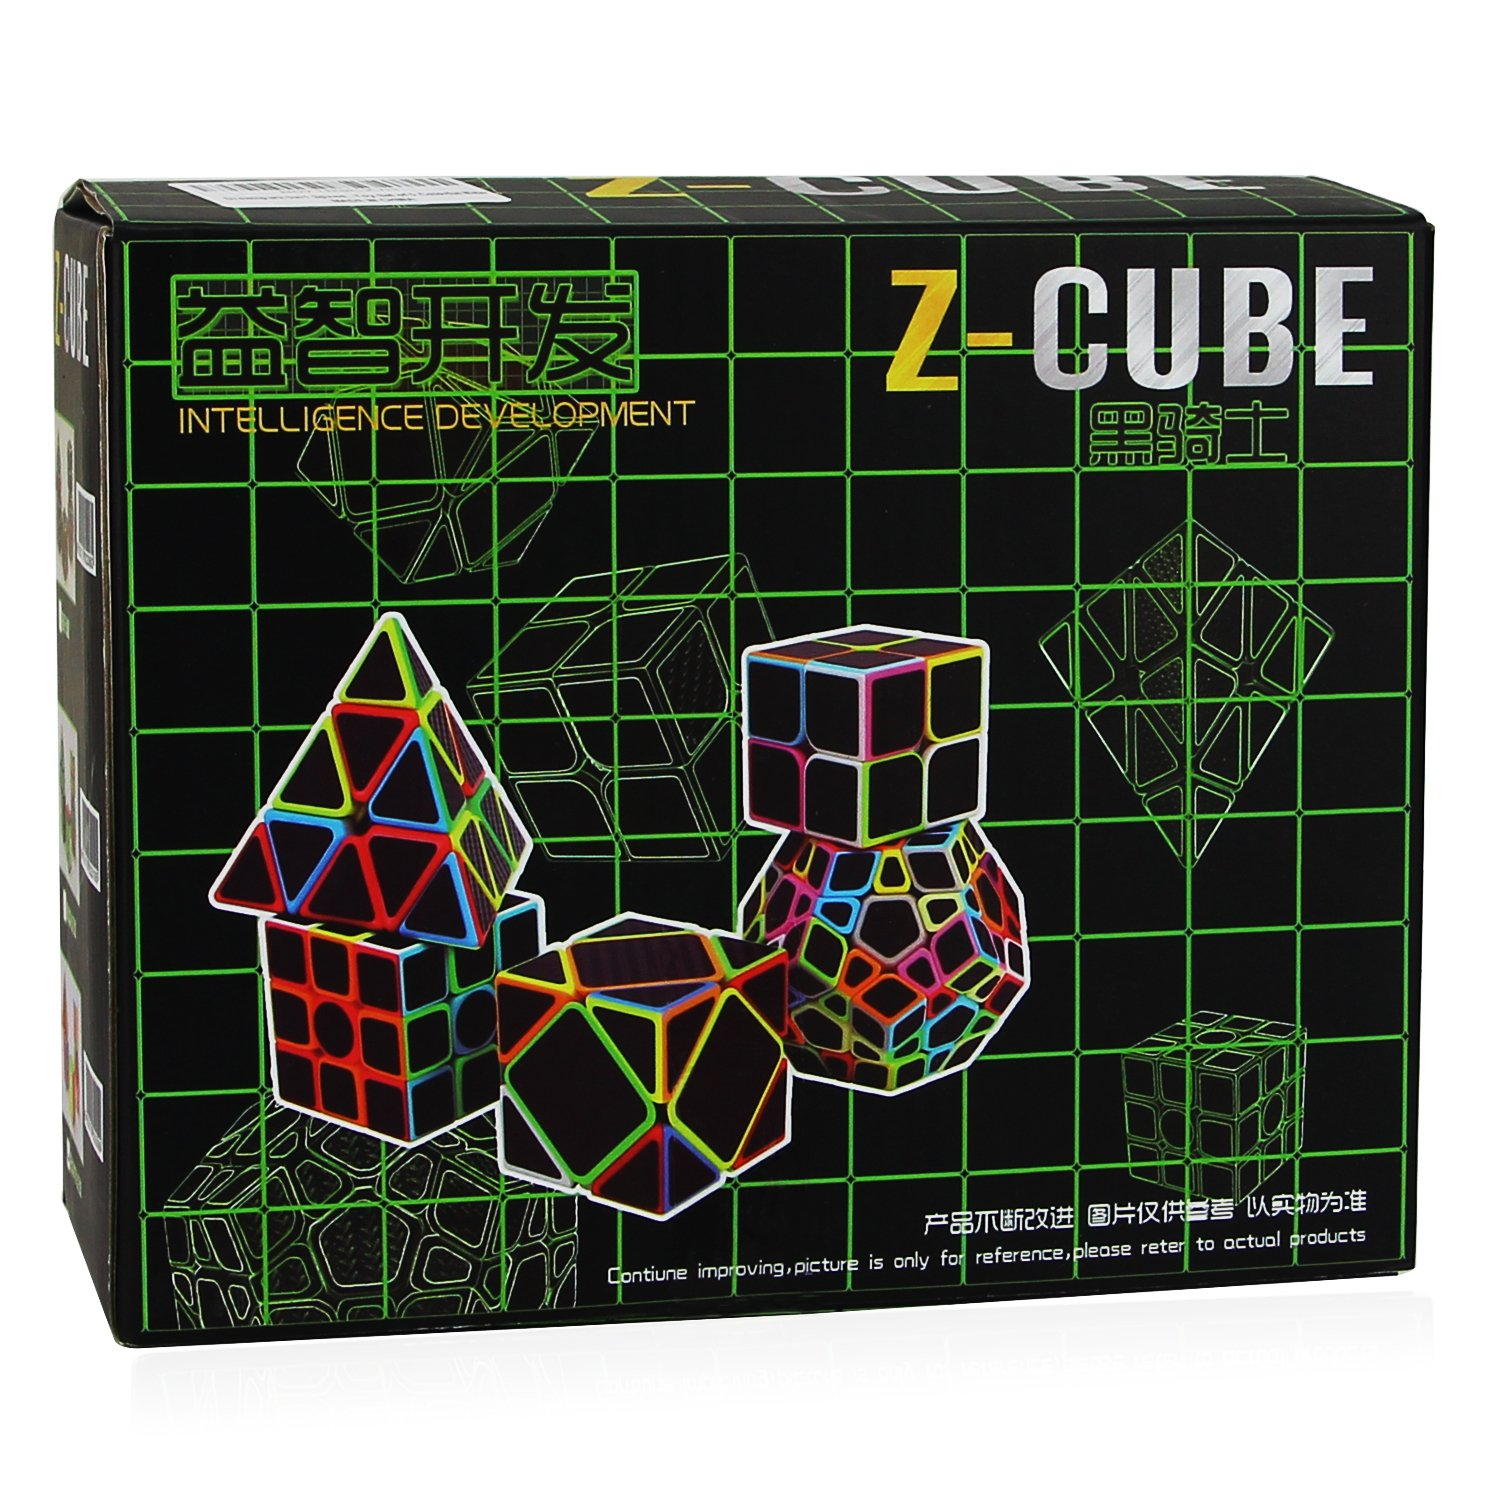 Dreampark Speed Cube Bundle [5 Pack] 2x2 3x3 Megaminx Skewb Pyramid Carbon Fiber Sticker Magic Cube Puzzle Toy Set of 5